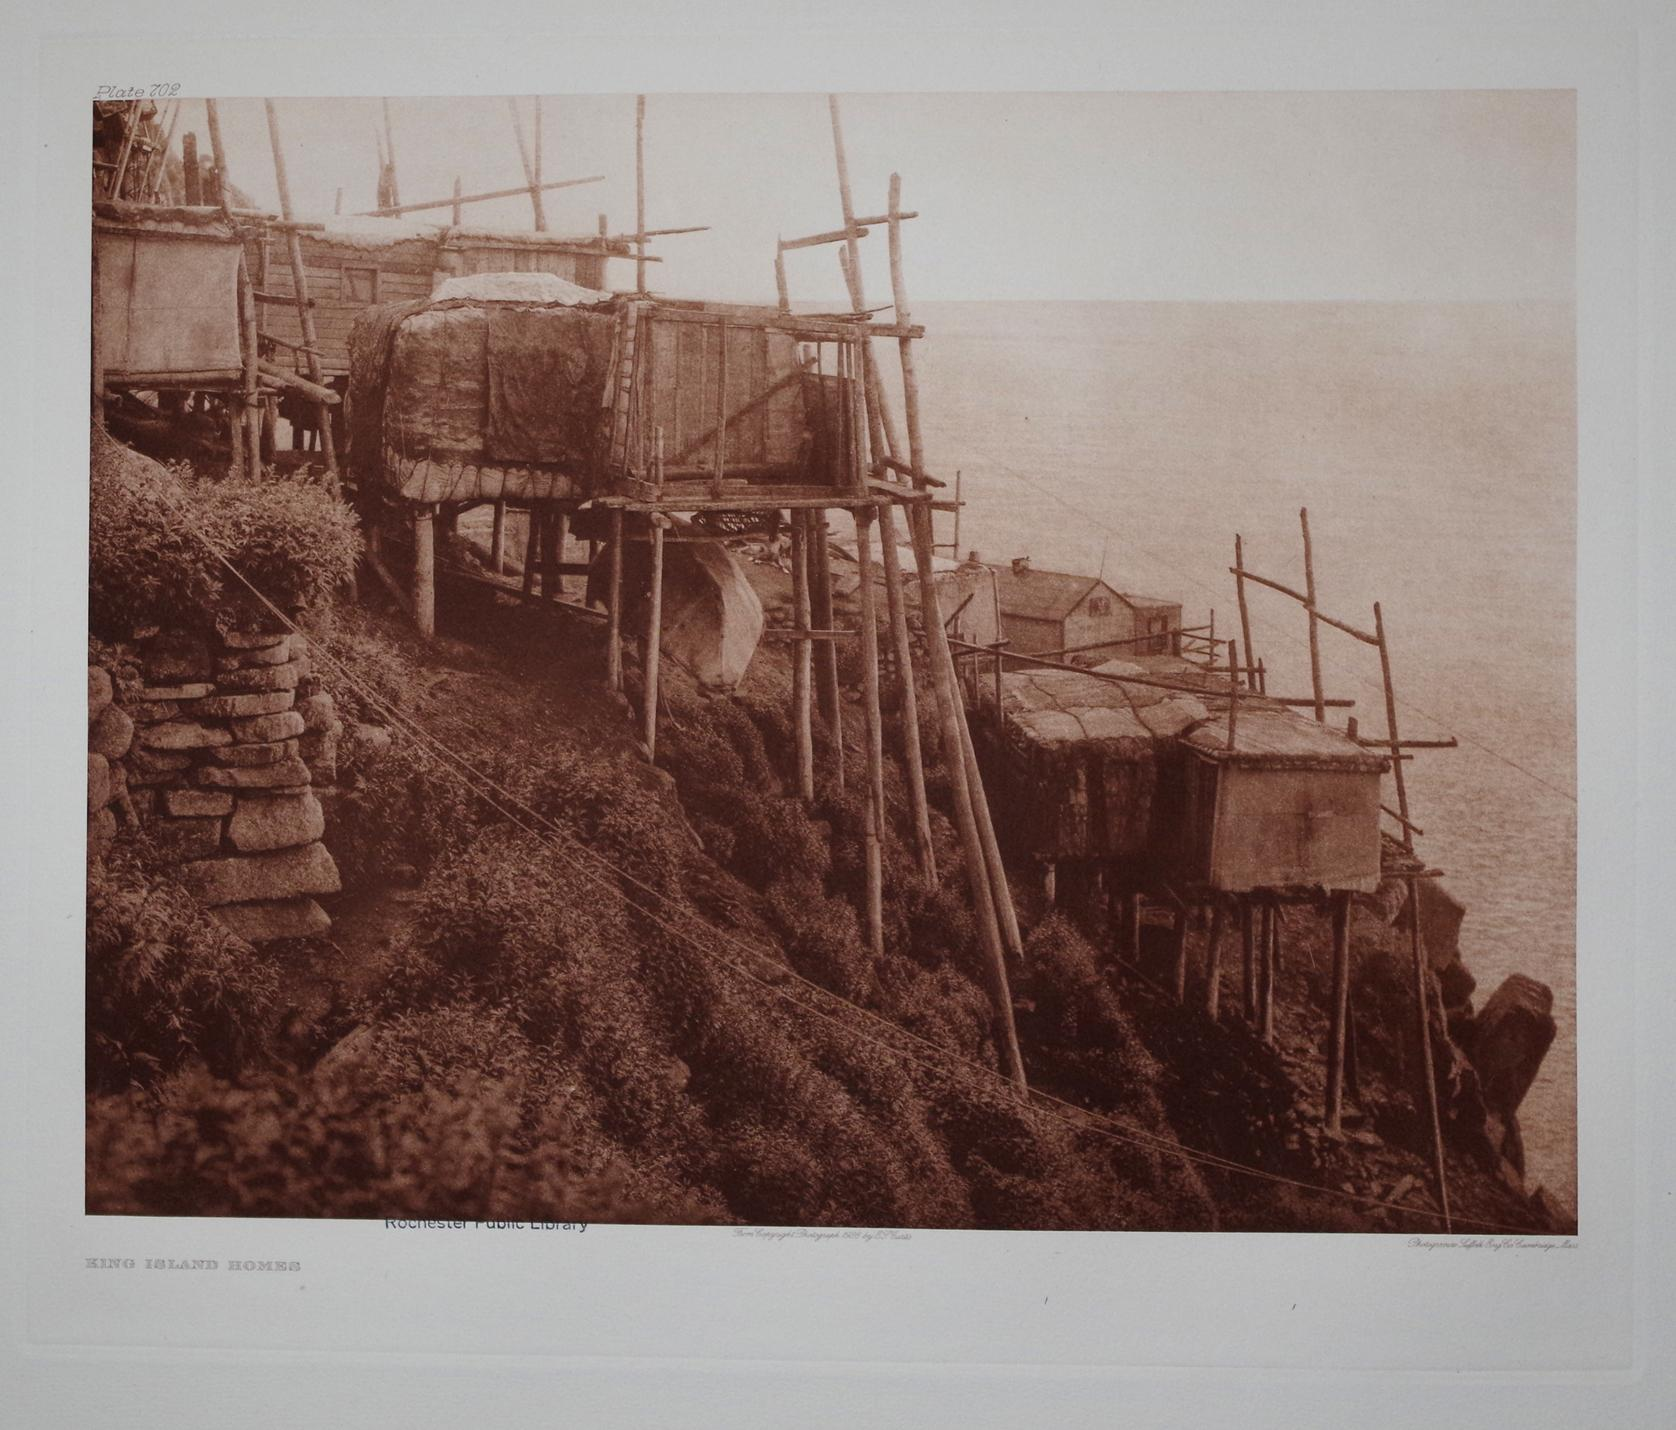 King Island Homes, Plate 702 from The North American Indian. Portfolio XX: Edward S. Curtis (1868-...